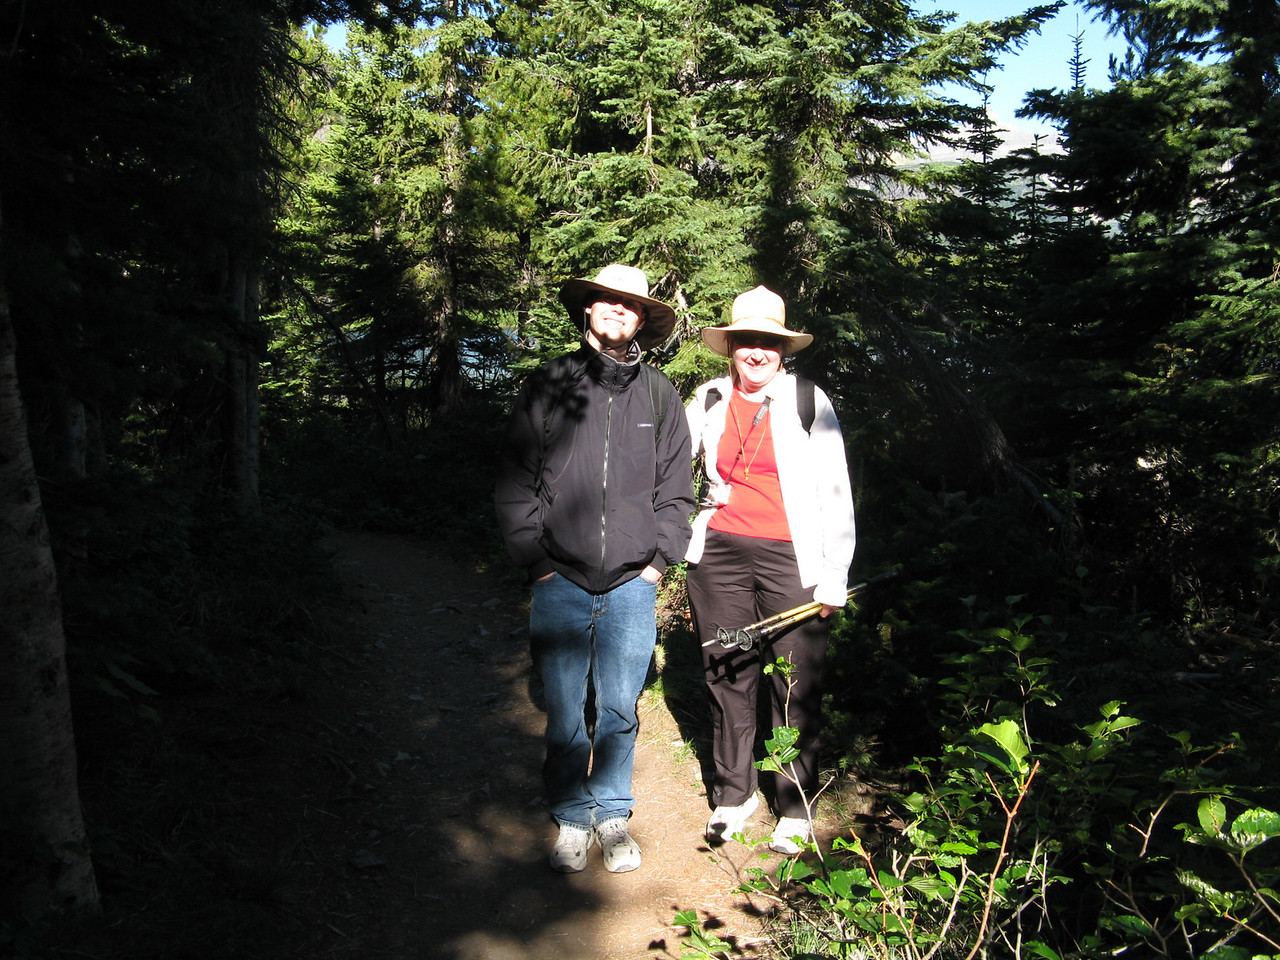 Early mornig sun on Kevin and Mary.  We hiked on level trail in evergreen forest around Swiftcurrent Lake on the south shore.